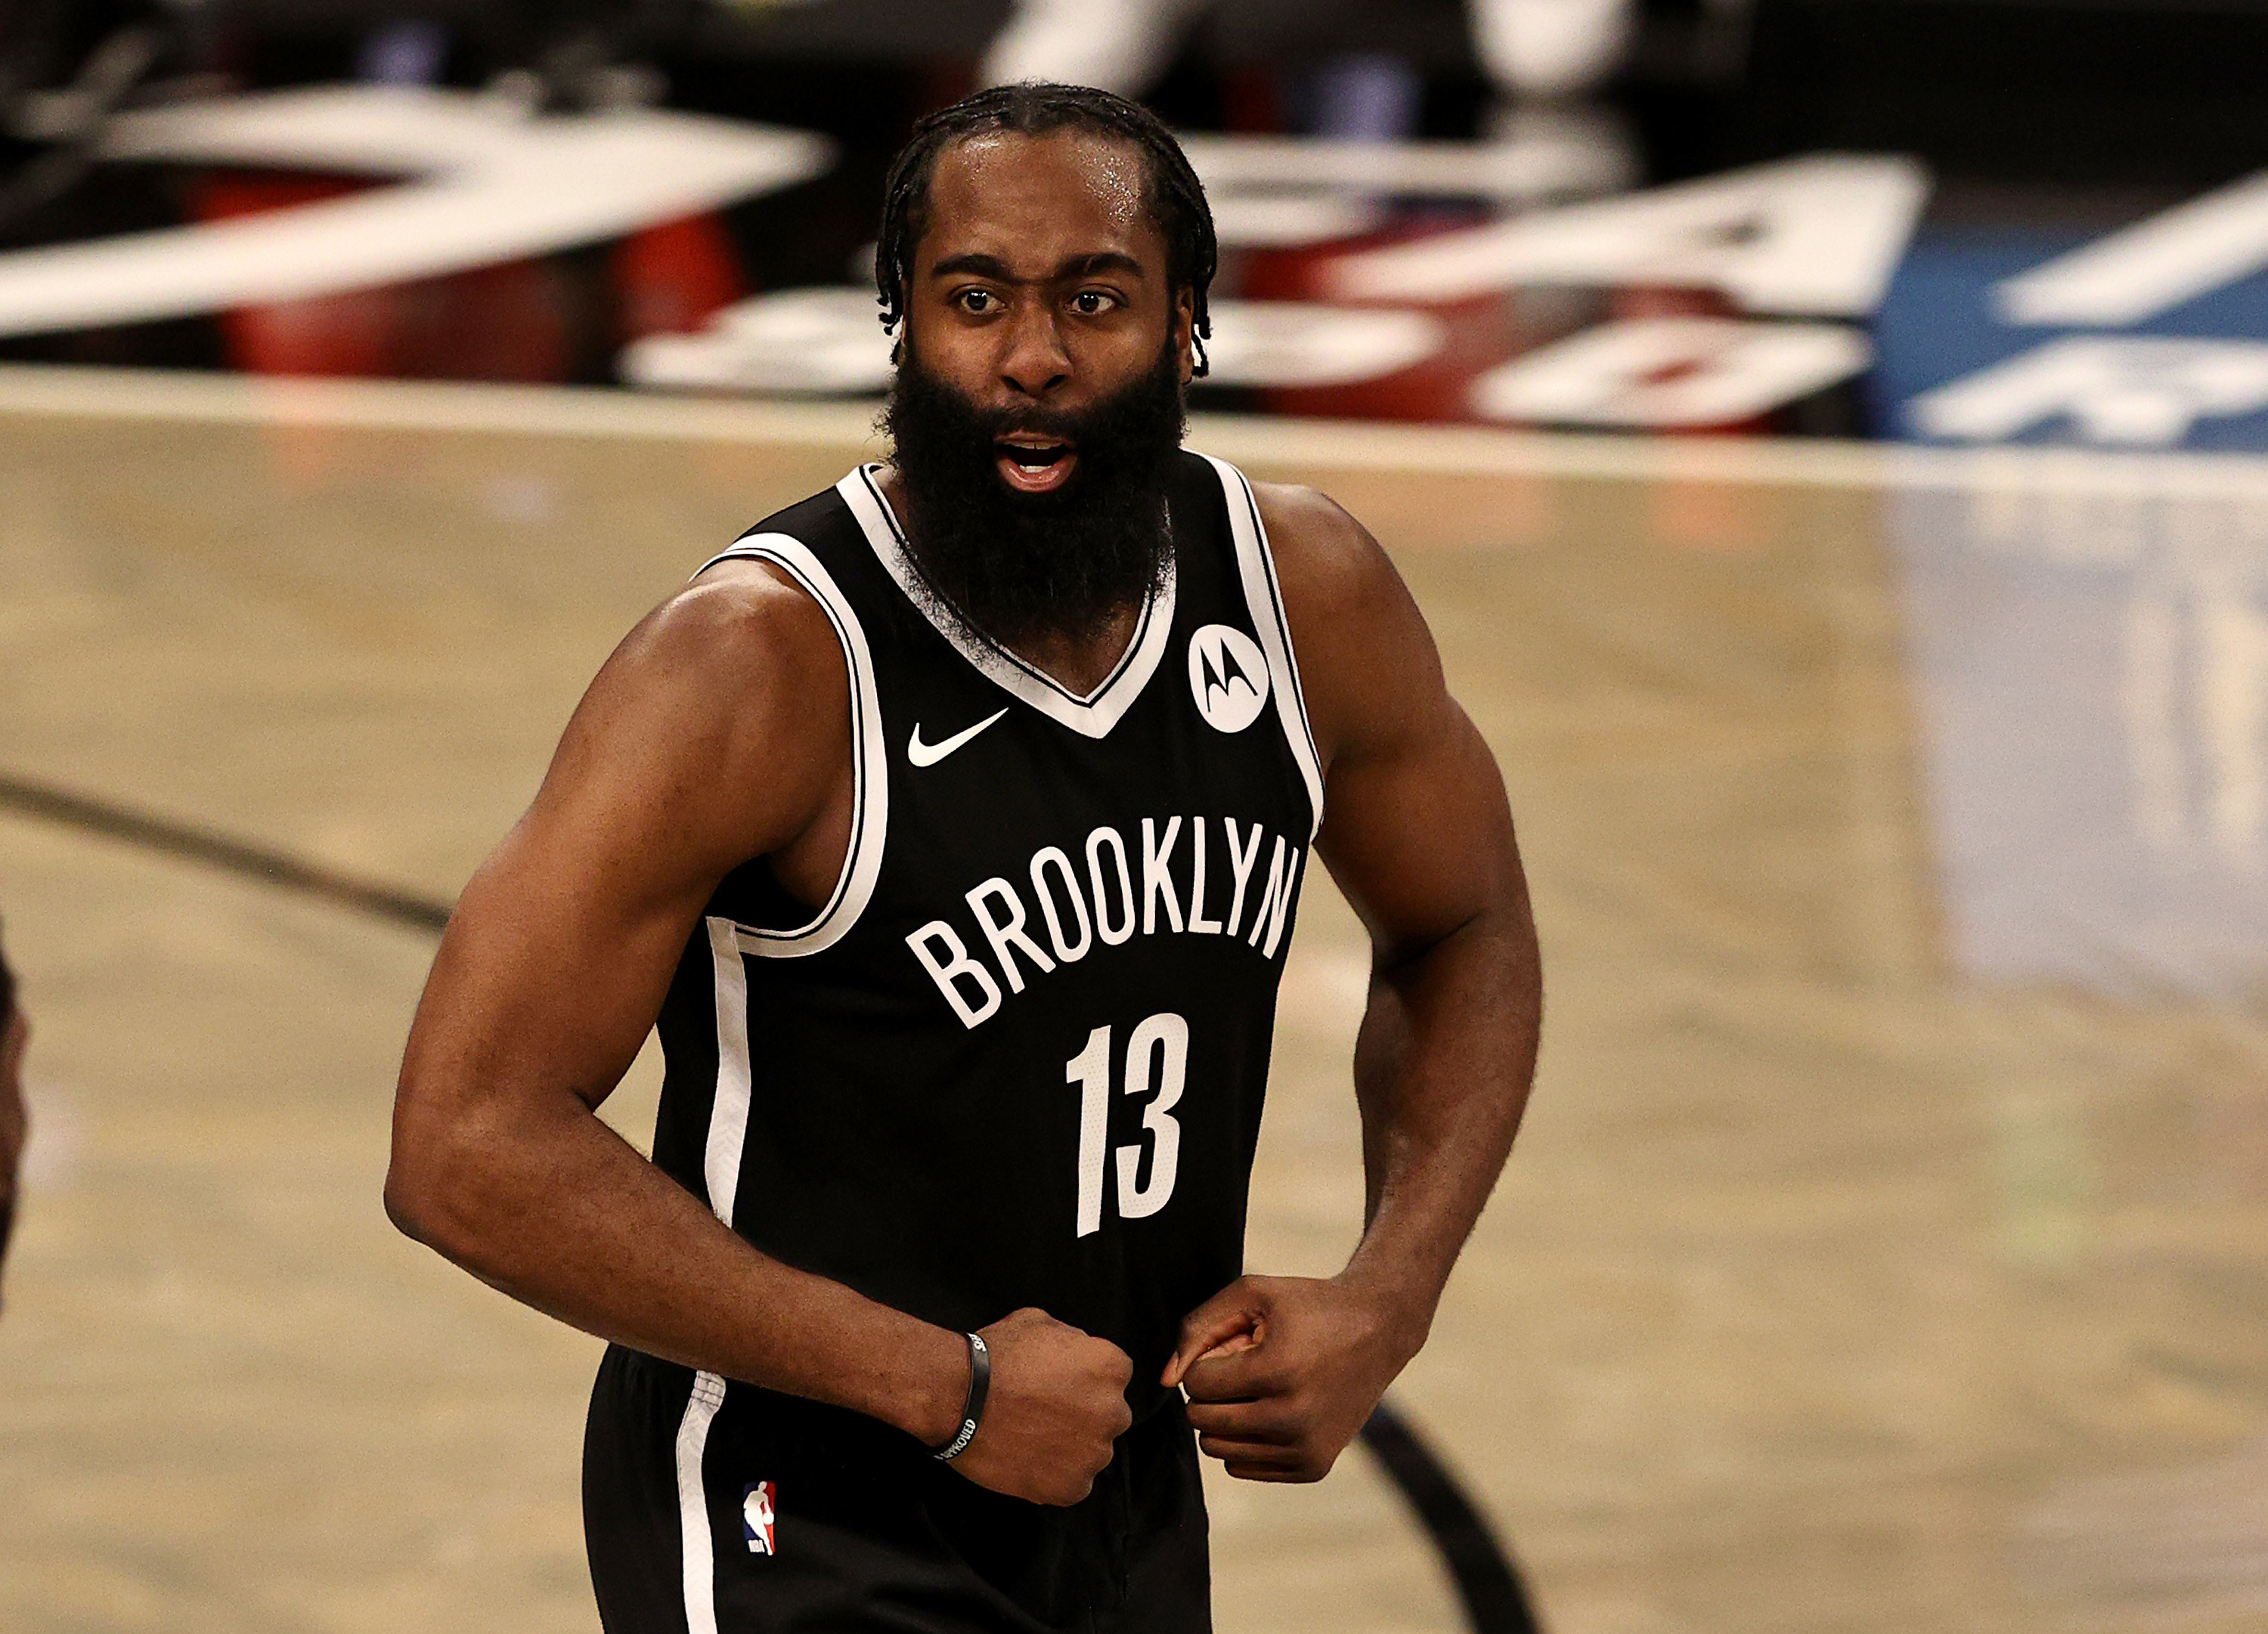 Present day James Harden flexing in a Nets jersey.